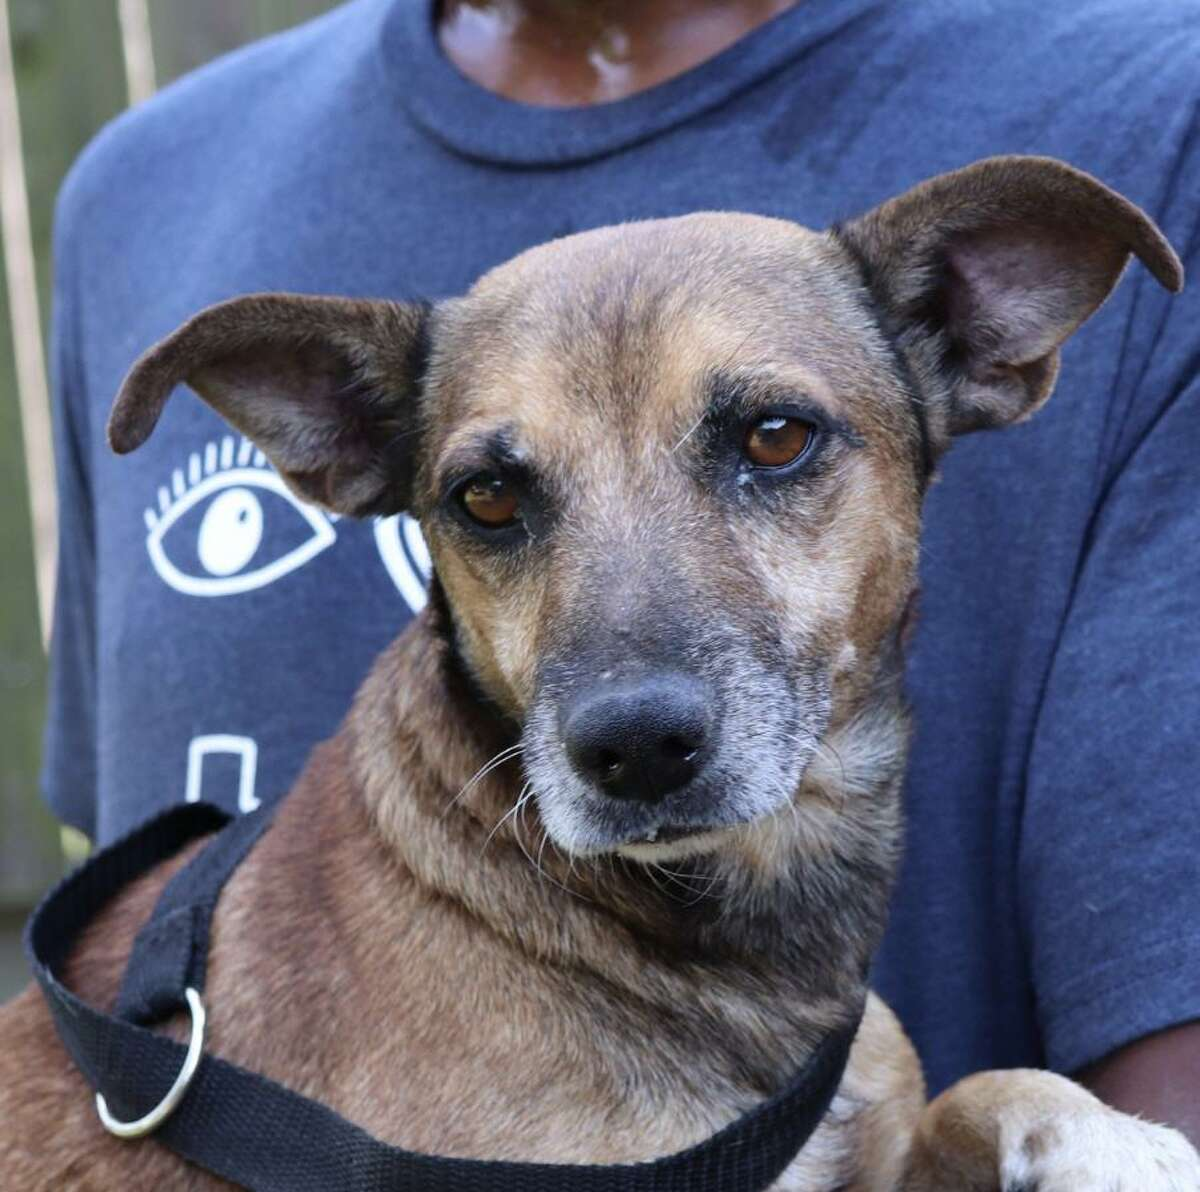 Animal Rescue Kingdom is looking for a family to adopt Ted, who was found as a stray in the Houston area. He is 5 to 7 years old and is easygoing and calm. He gets along with other dogs. The Dachshund mix weighs about 20 pounds. Email animalrescuekingdom@gmail.om or call 832-267-5777. Adoption fee applies.